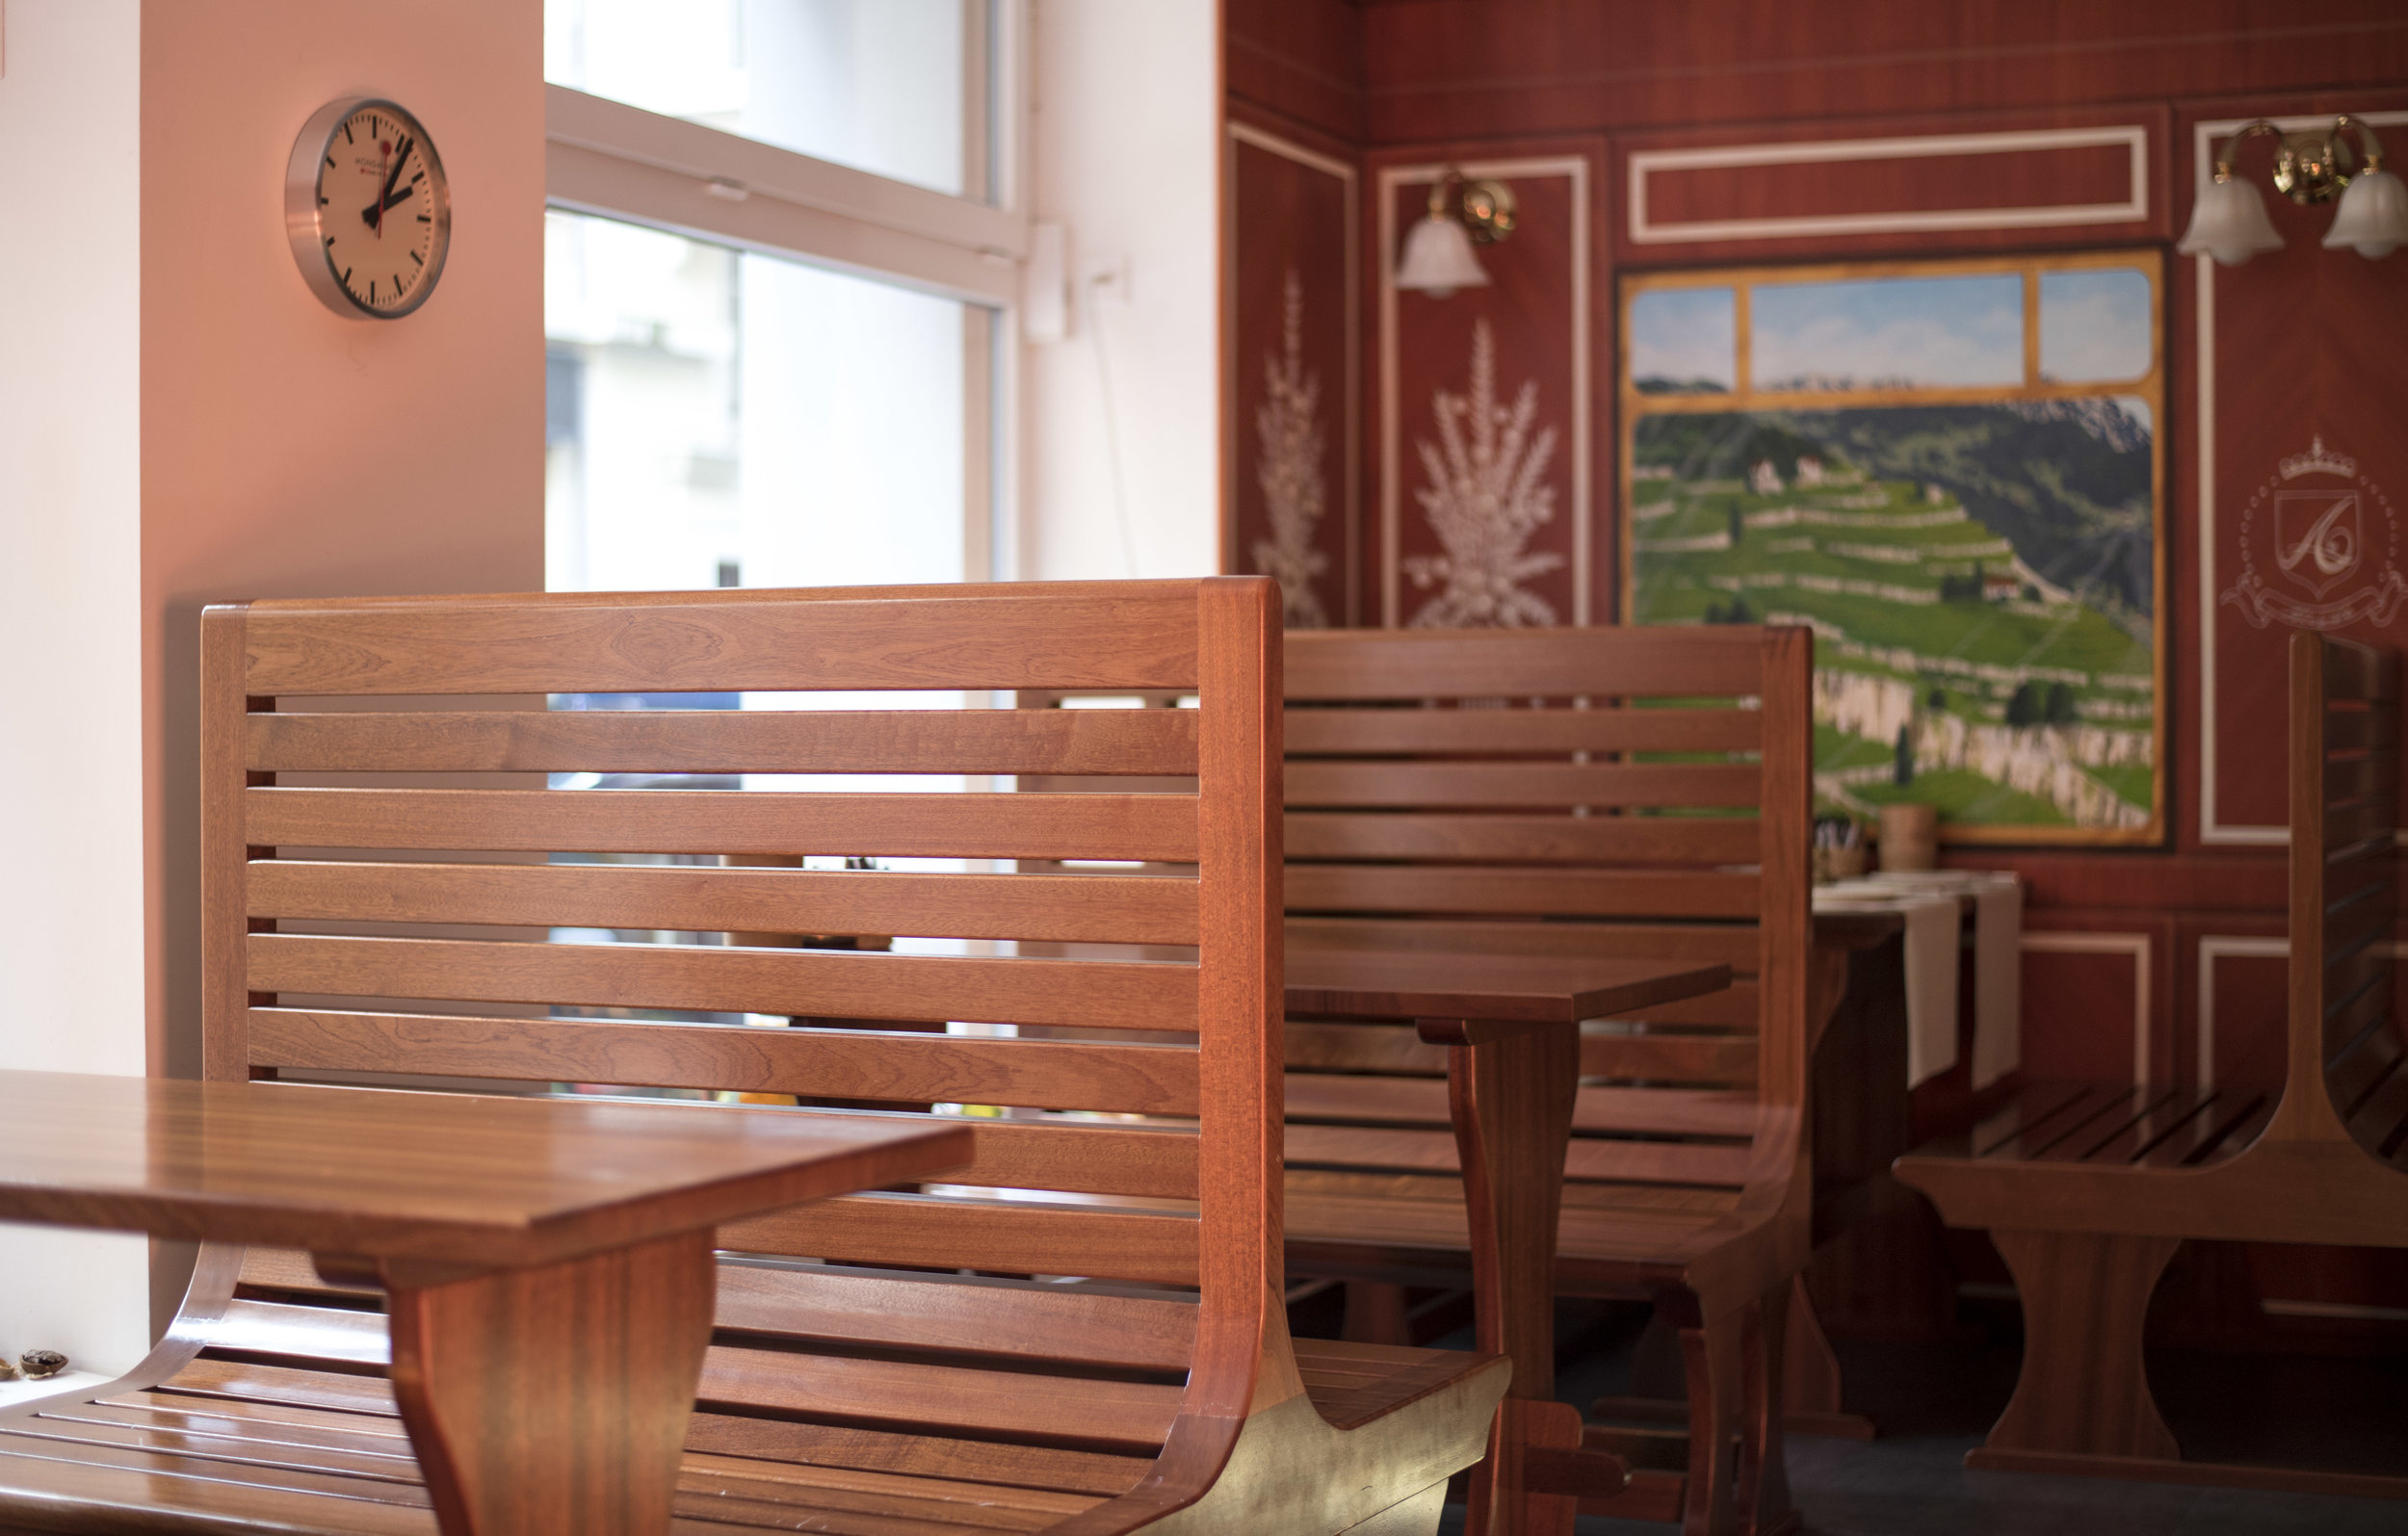 Retro dining booths.